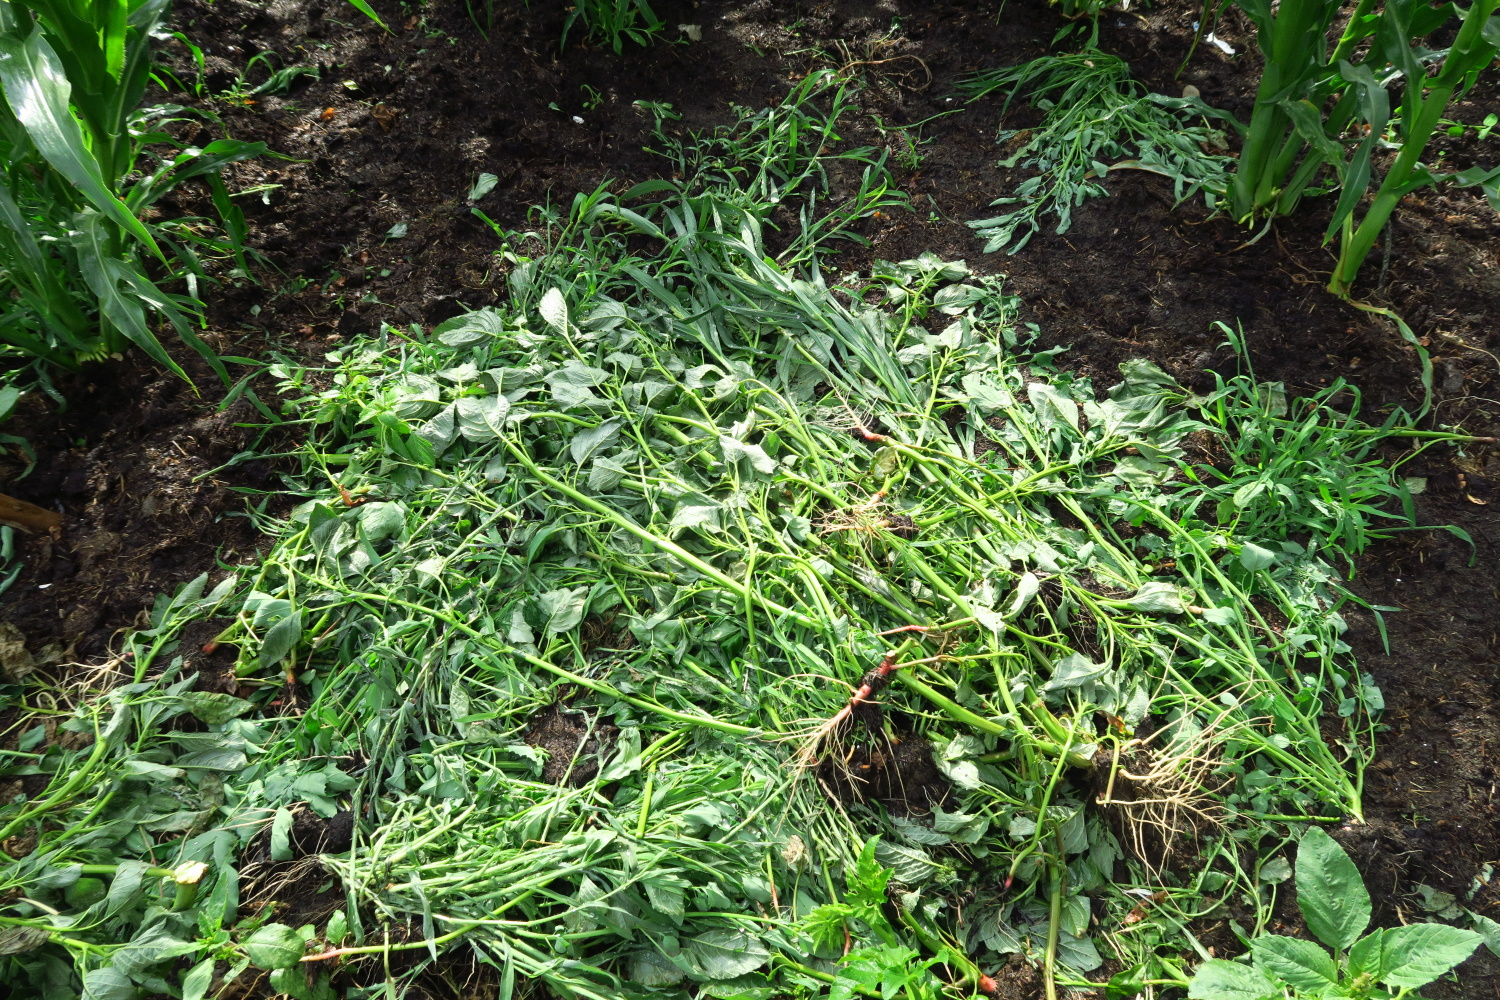 weeds - I just throw them down and let them become compost